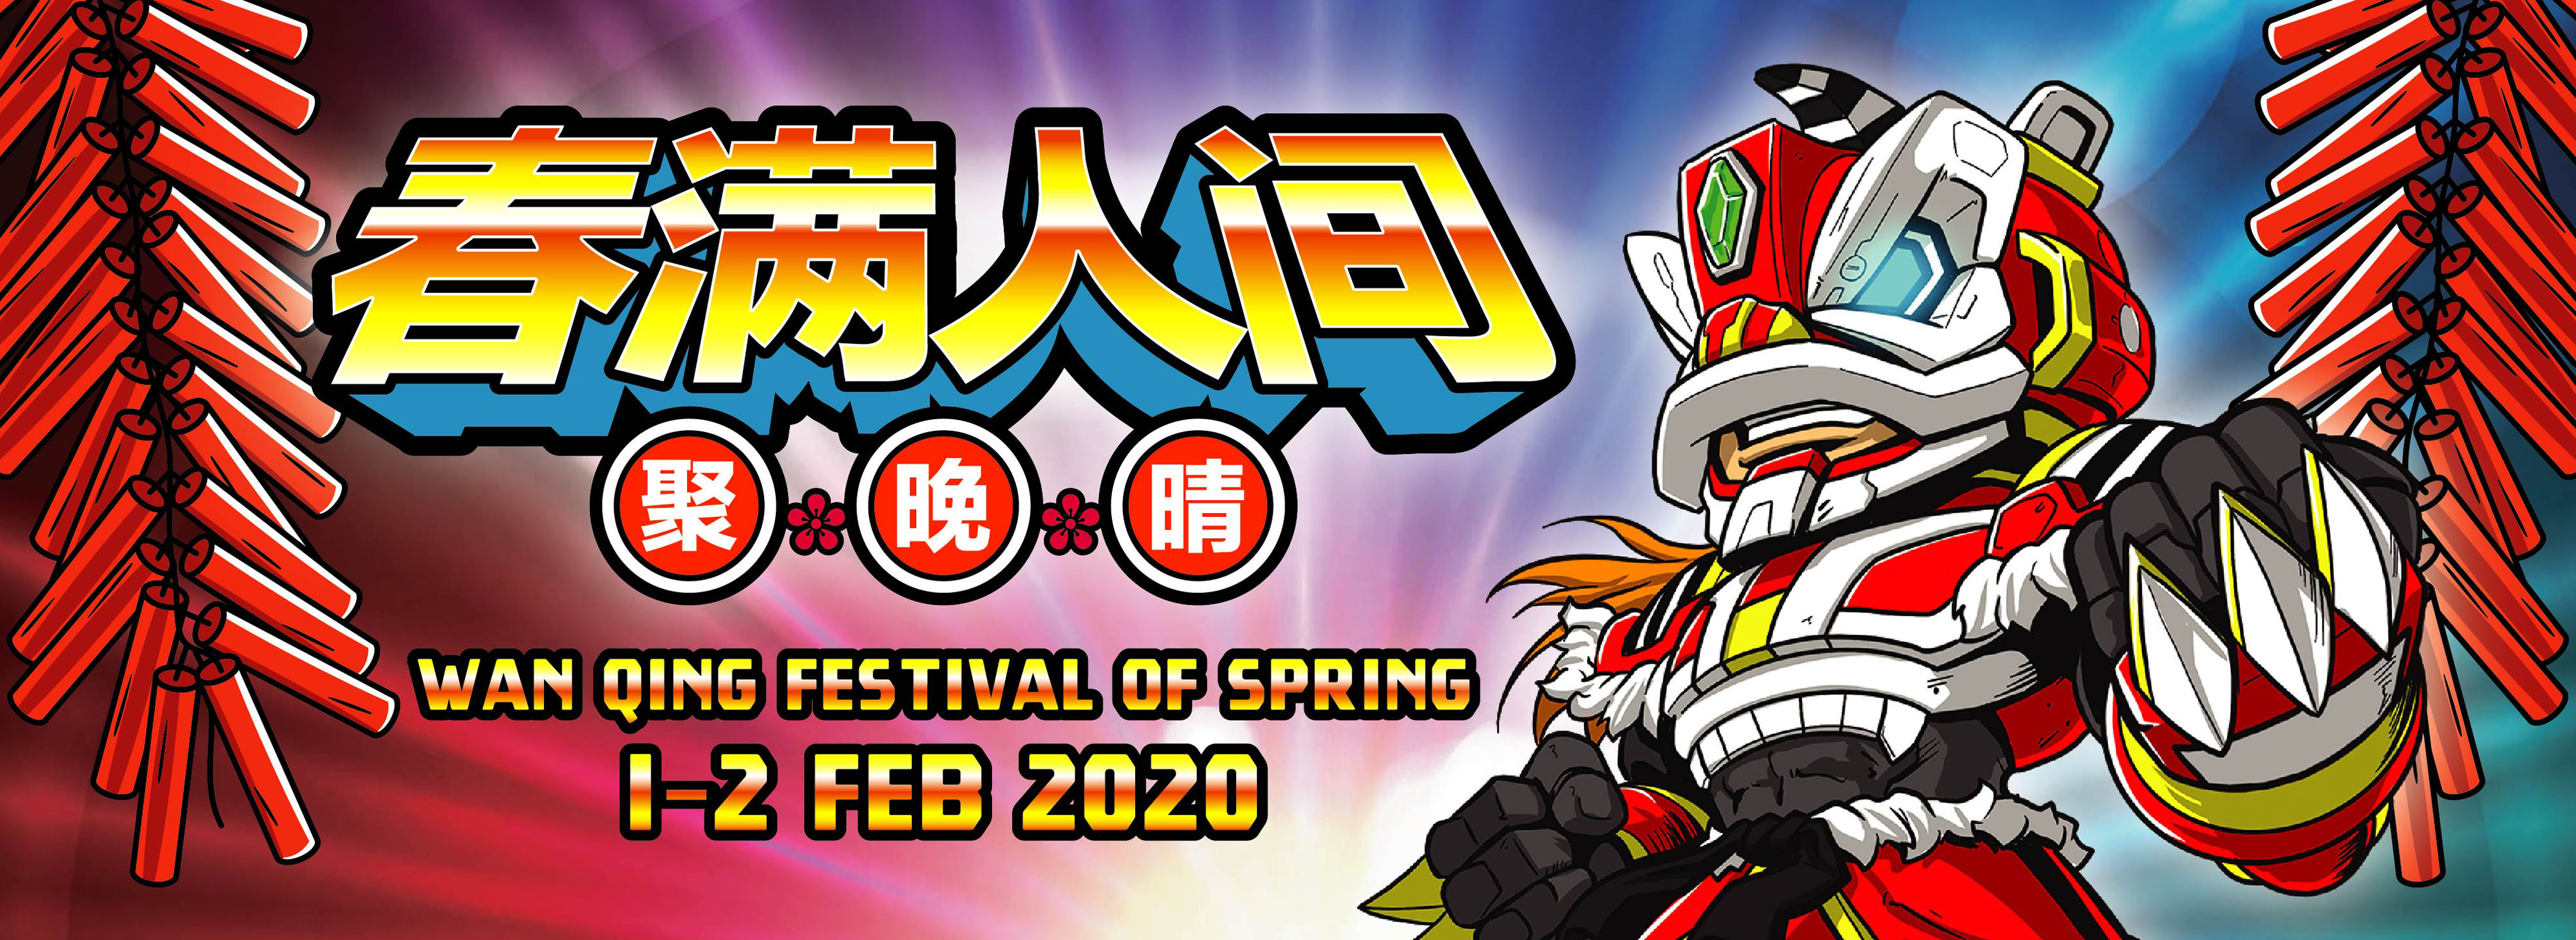 Wan Qing Festival of Spring 2020